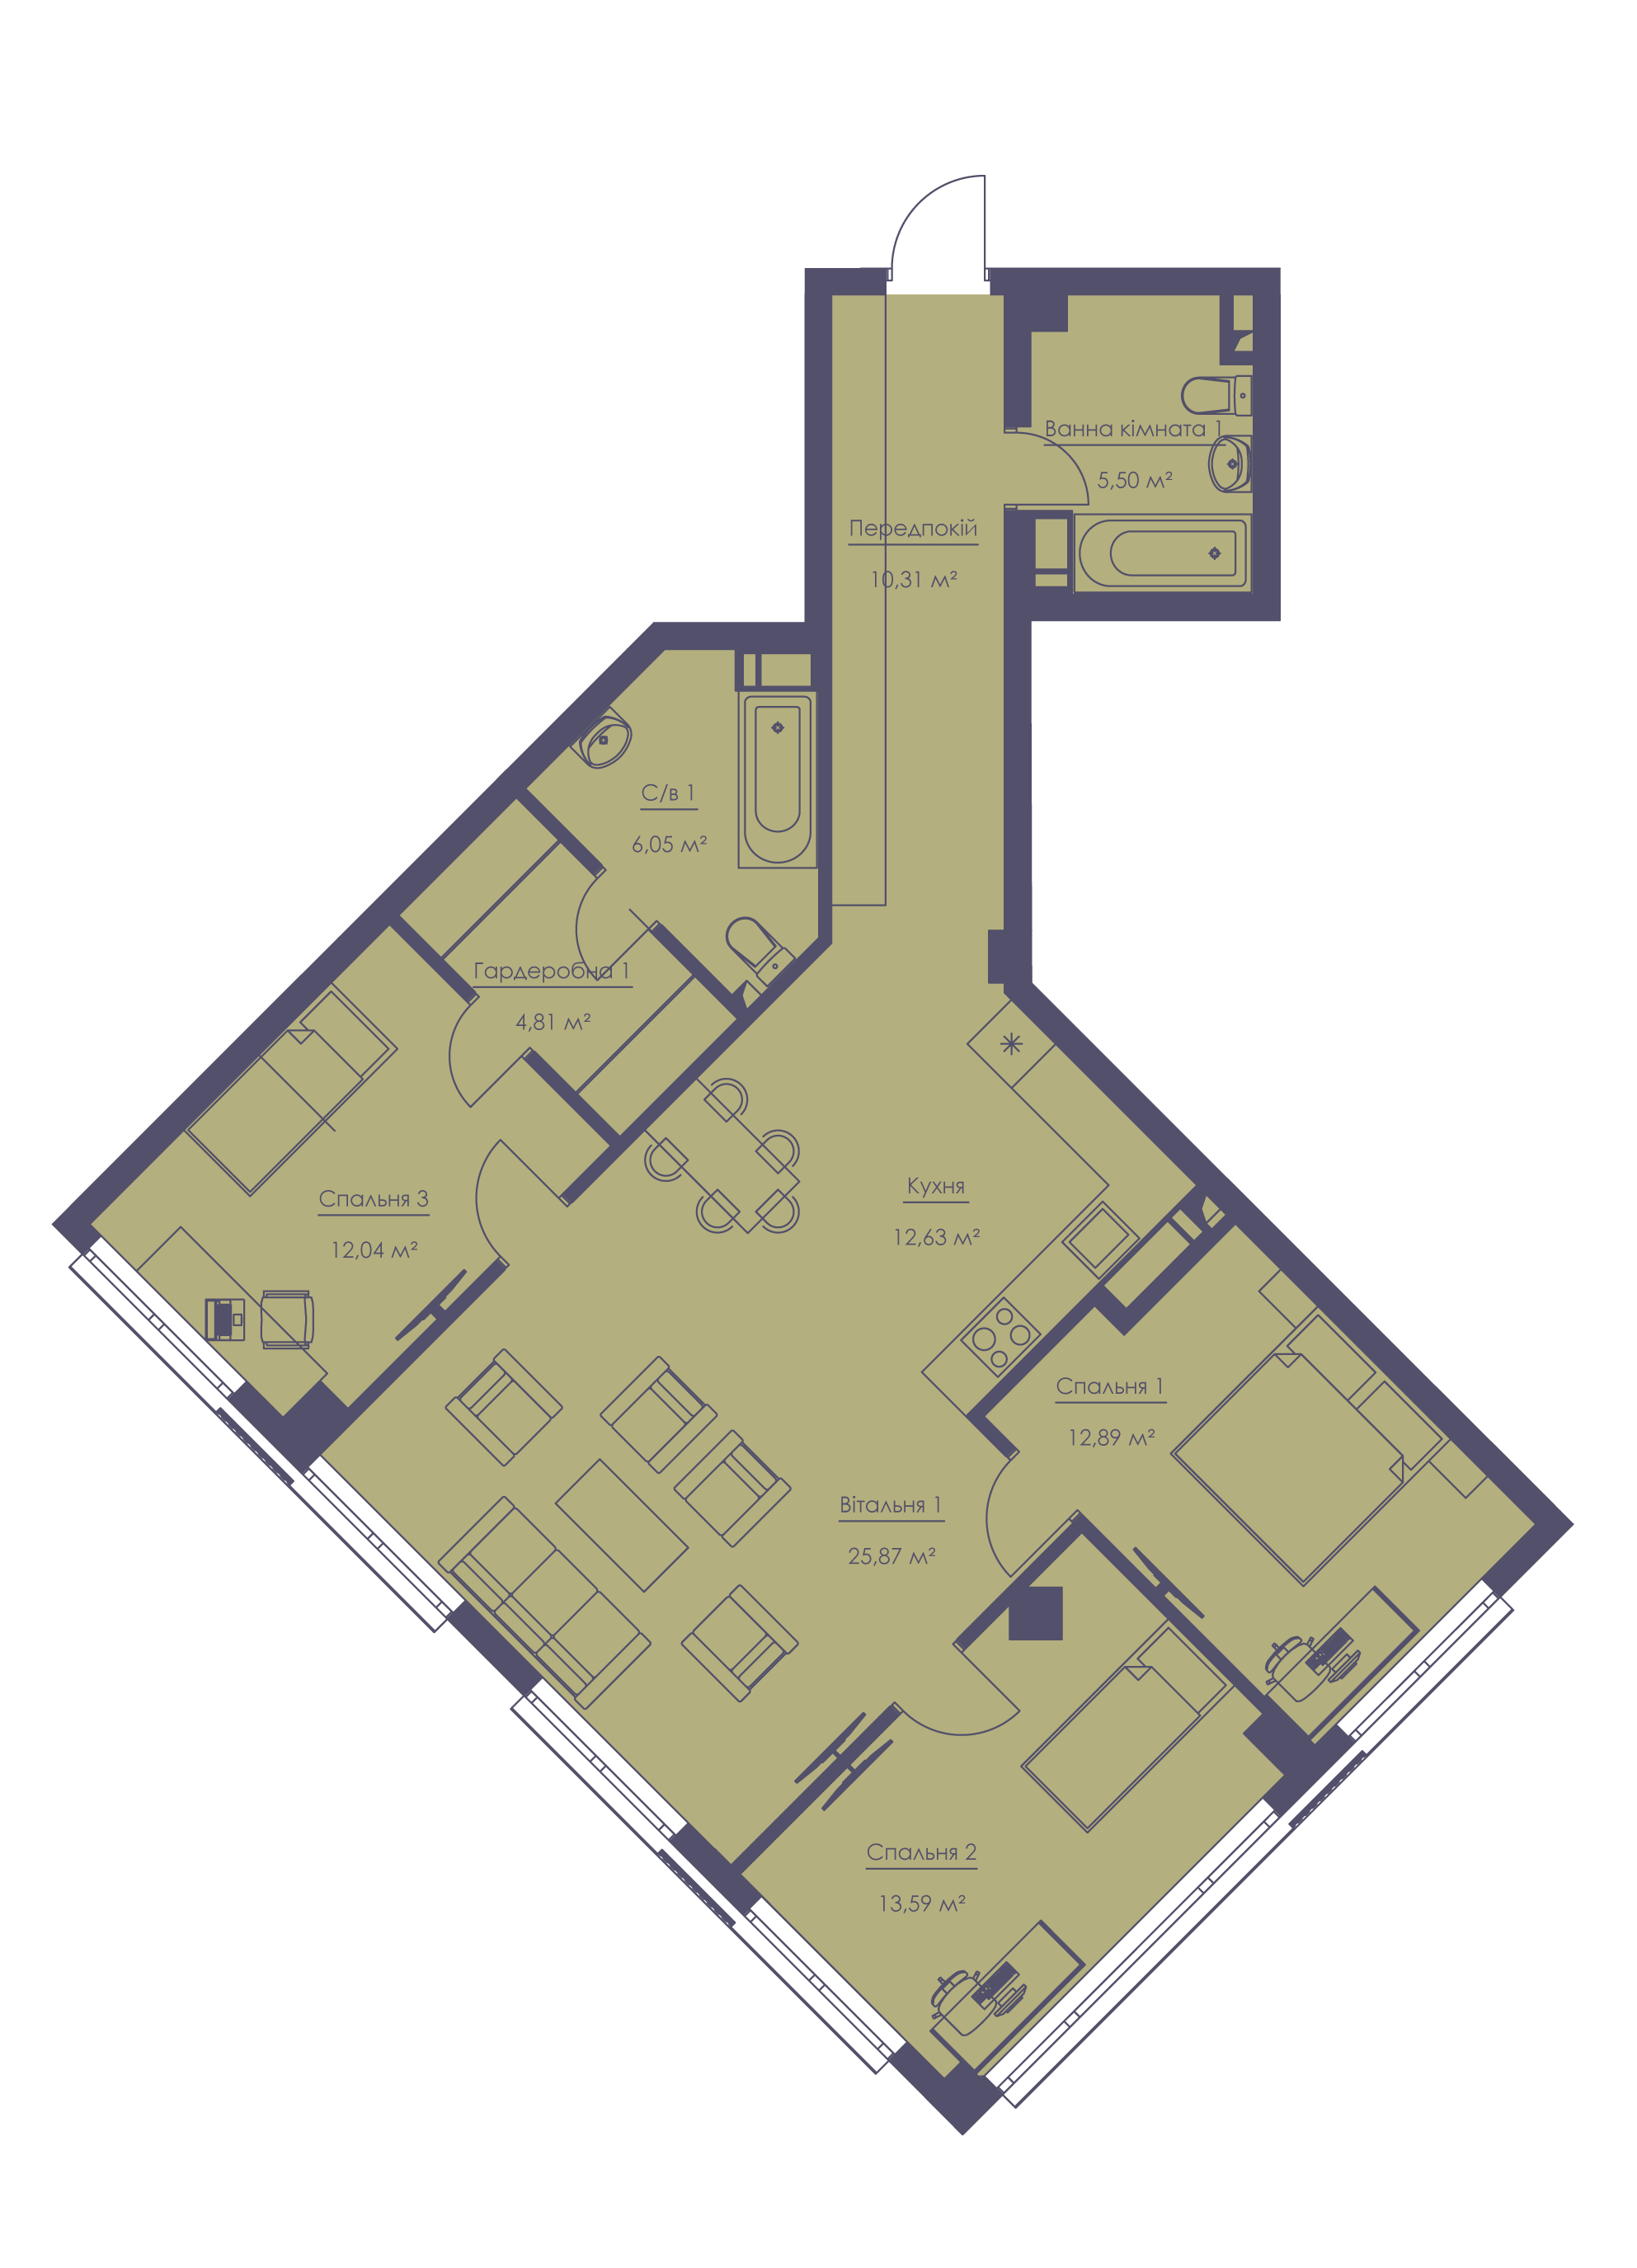 Apartment layout KV_2_1.4a_1_1_2-1